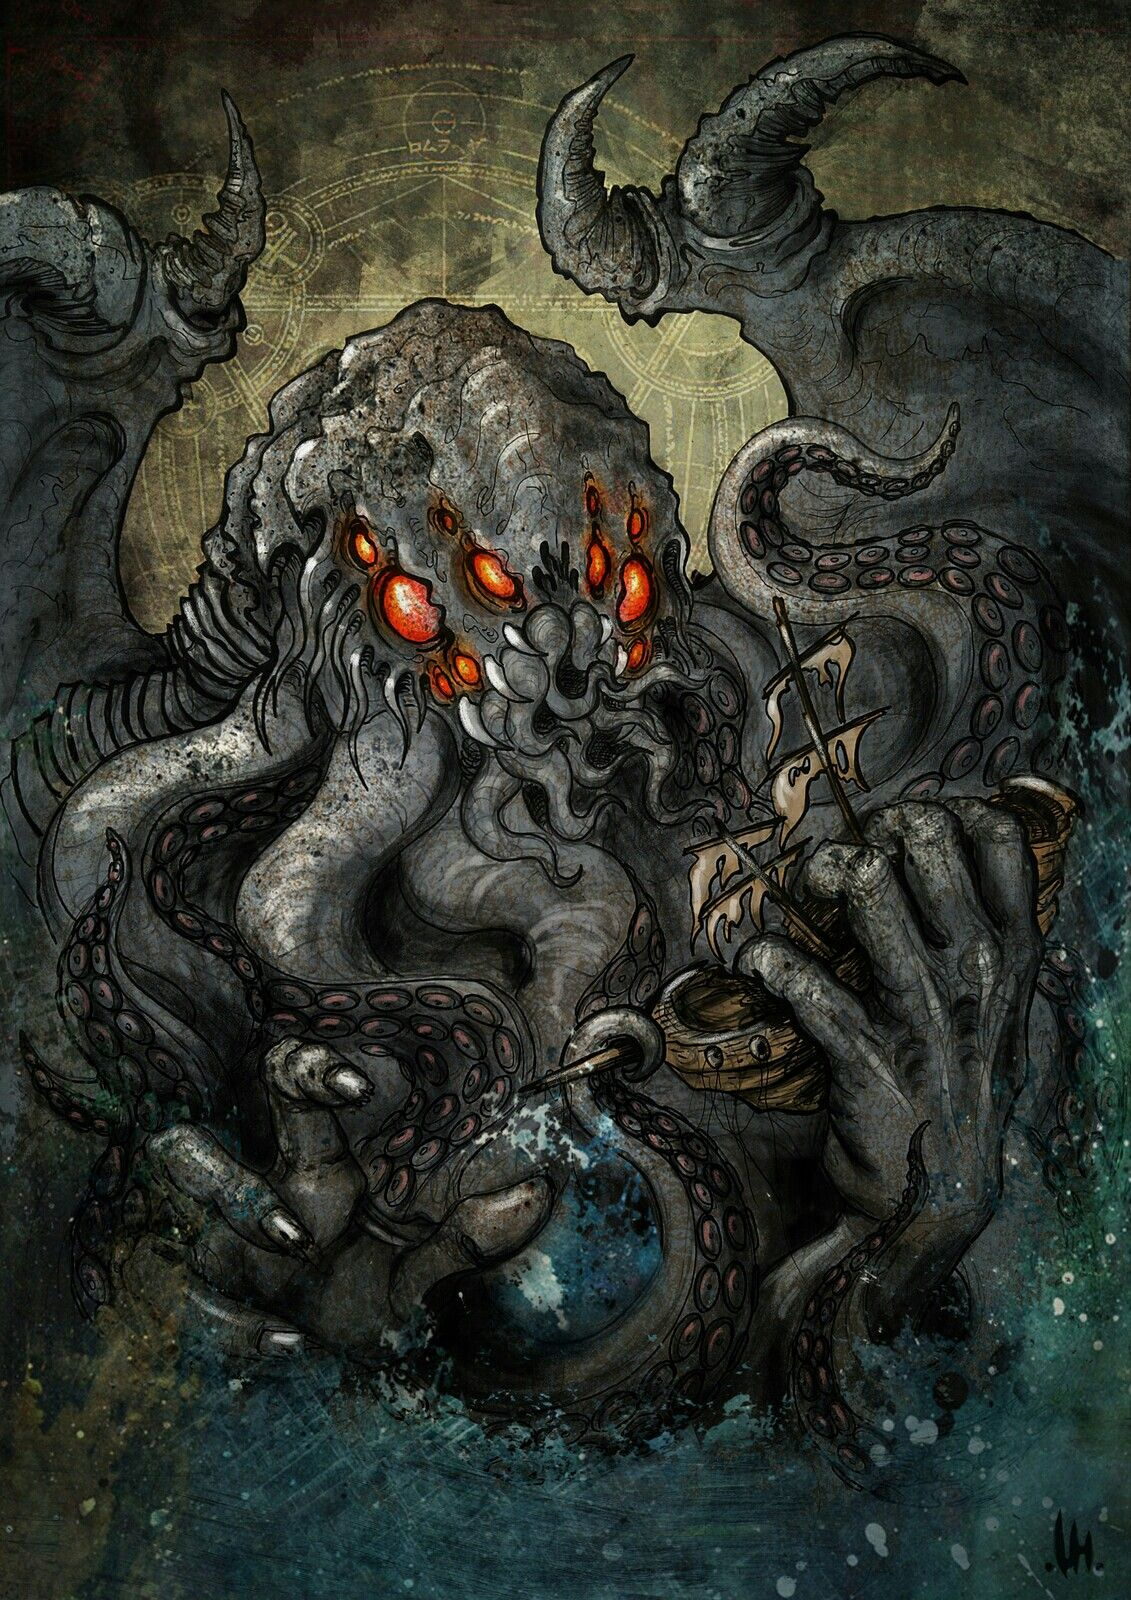 Pin by J on Inspiration Cthulhu, Lovecraft monsters